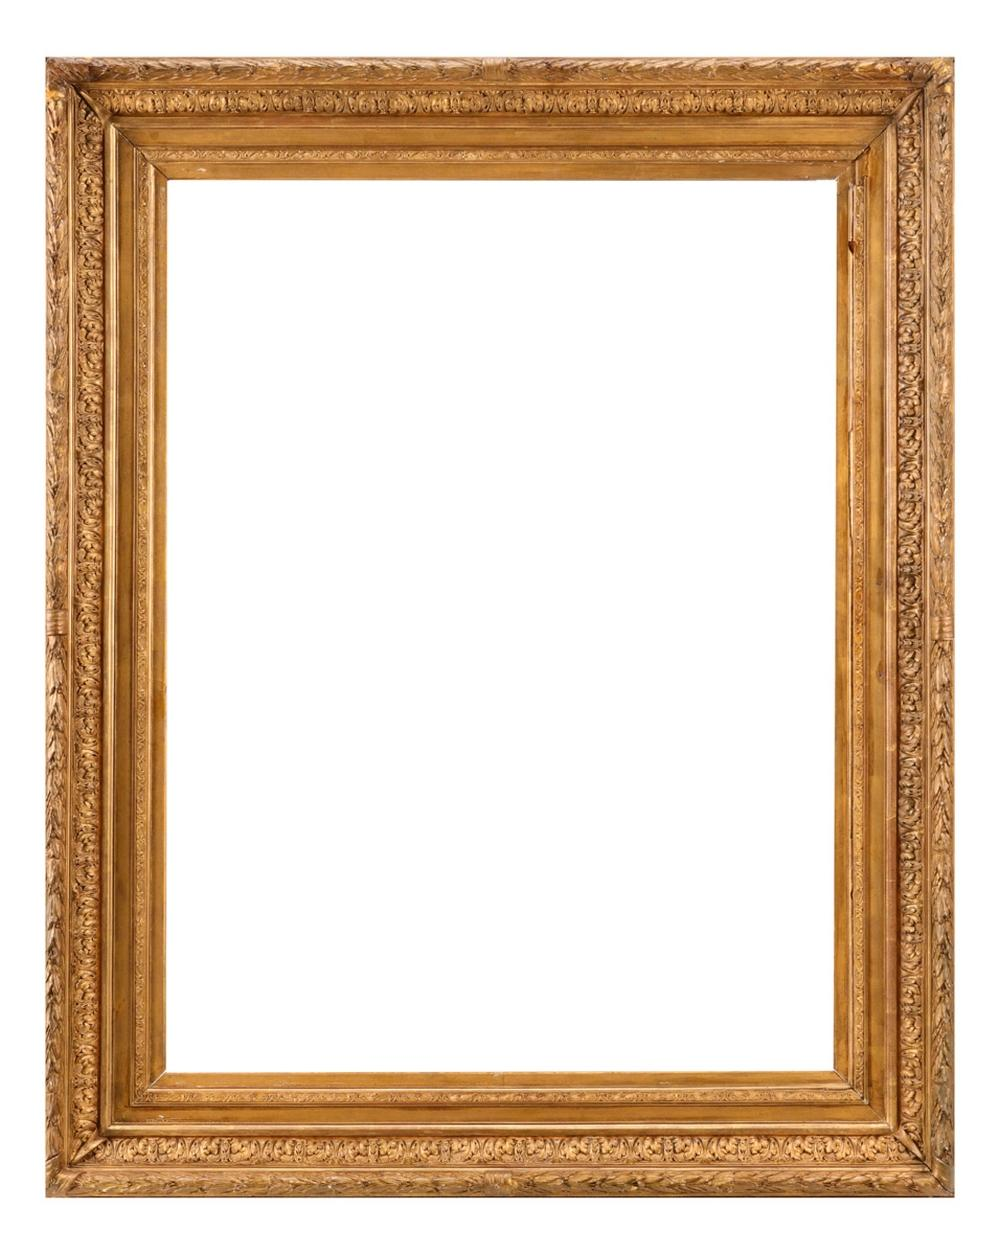 A LARGE FRAME